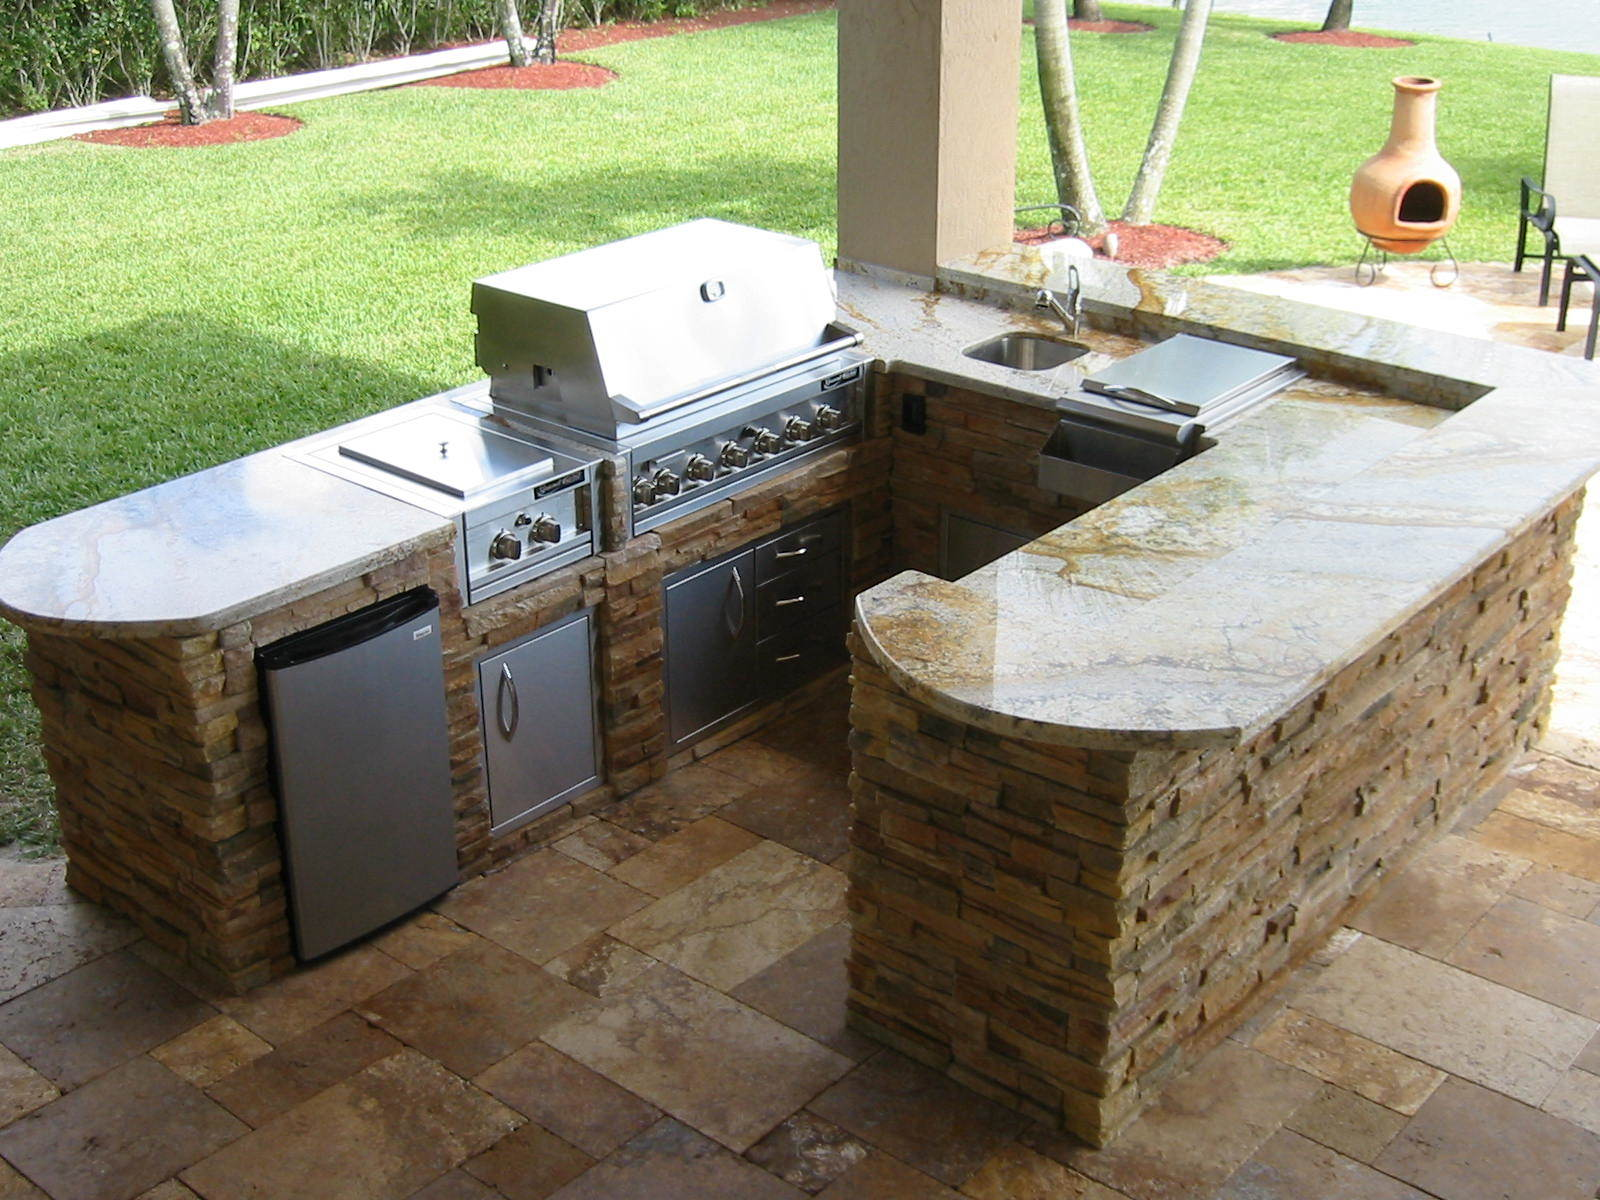 Outdoor Barbecue, Outdoor grills and kitchens